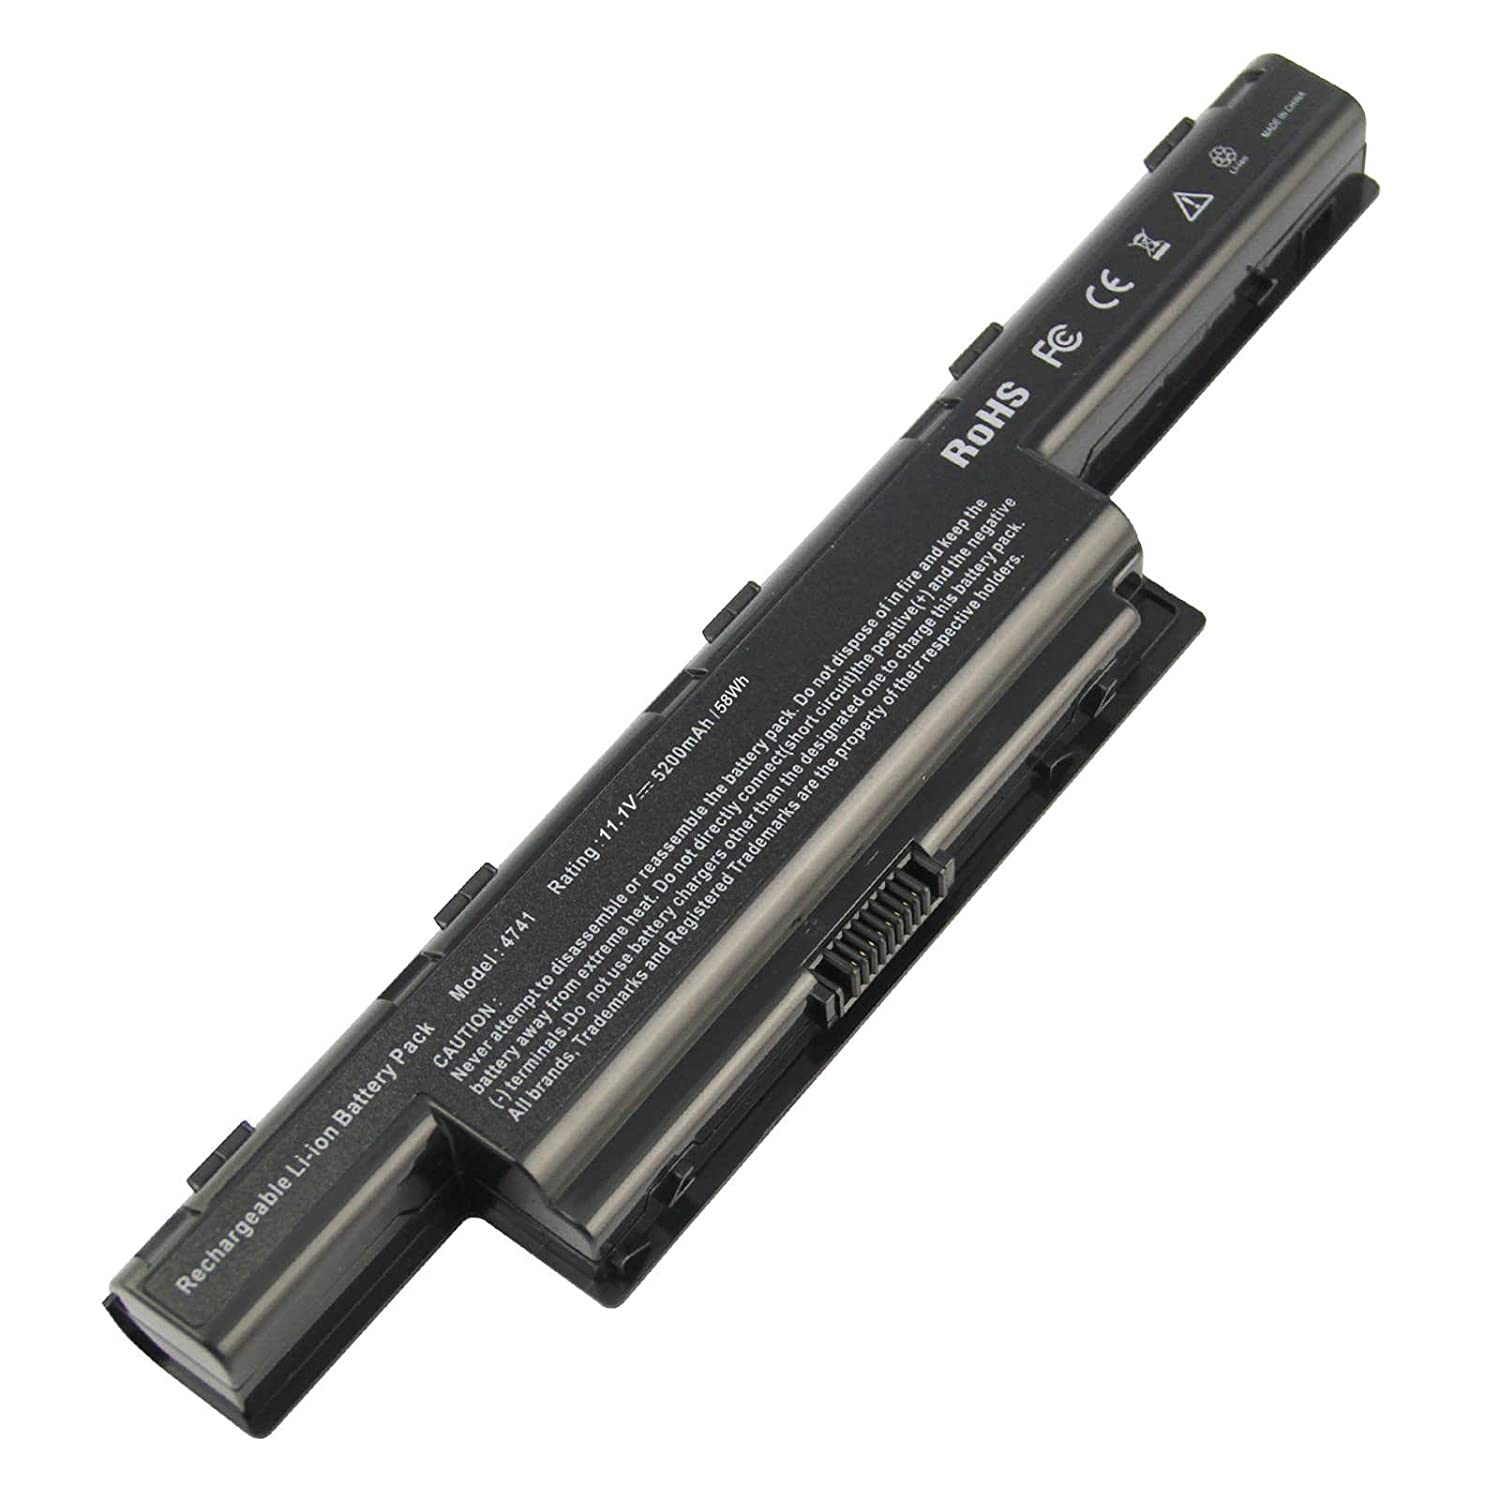 AC Doctor INC Laptop Battery for Acer AS10D31 AS10D51 Aspire 5253 5251 5336 5349 5551 5552 5560 5733 5733Z TravelMate 5740 5735 5735Z 5740G Gateway NV55C NV50A NV53A NV59C